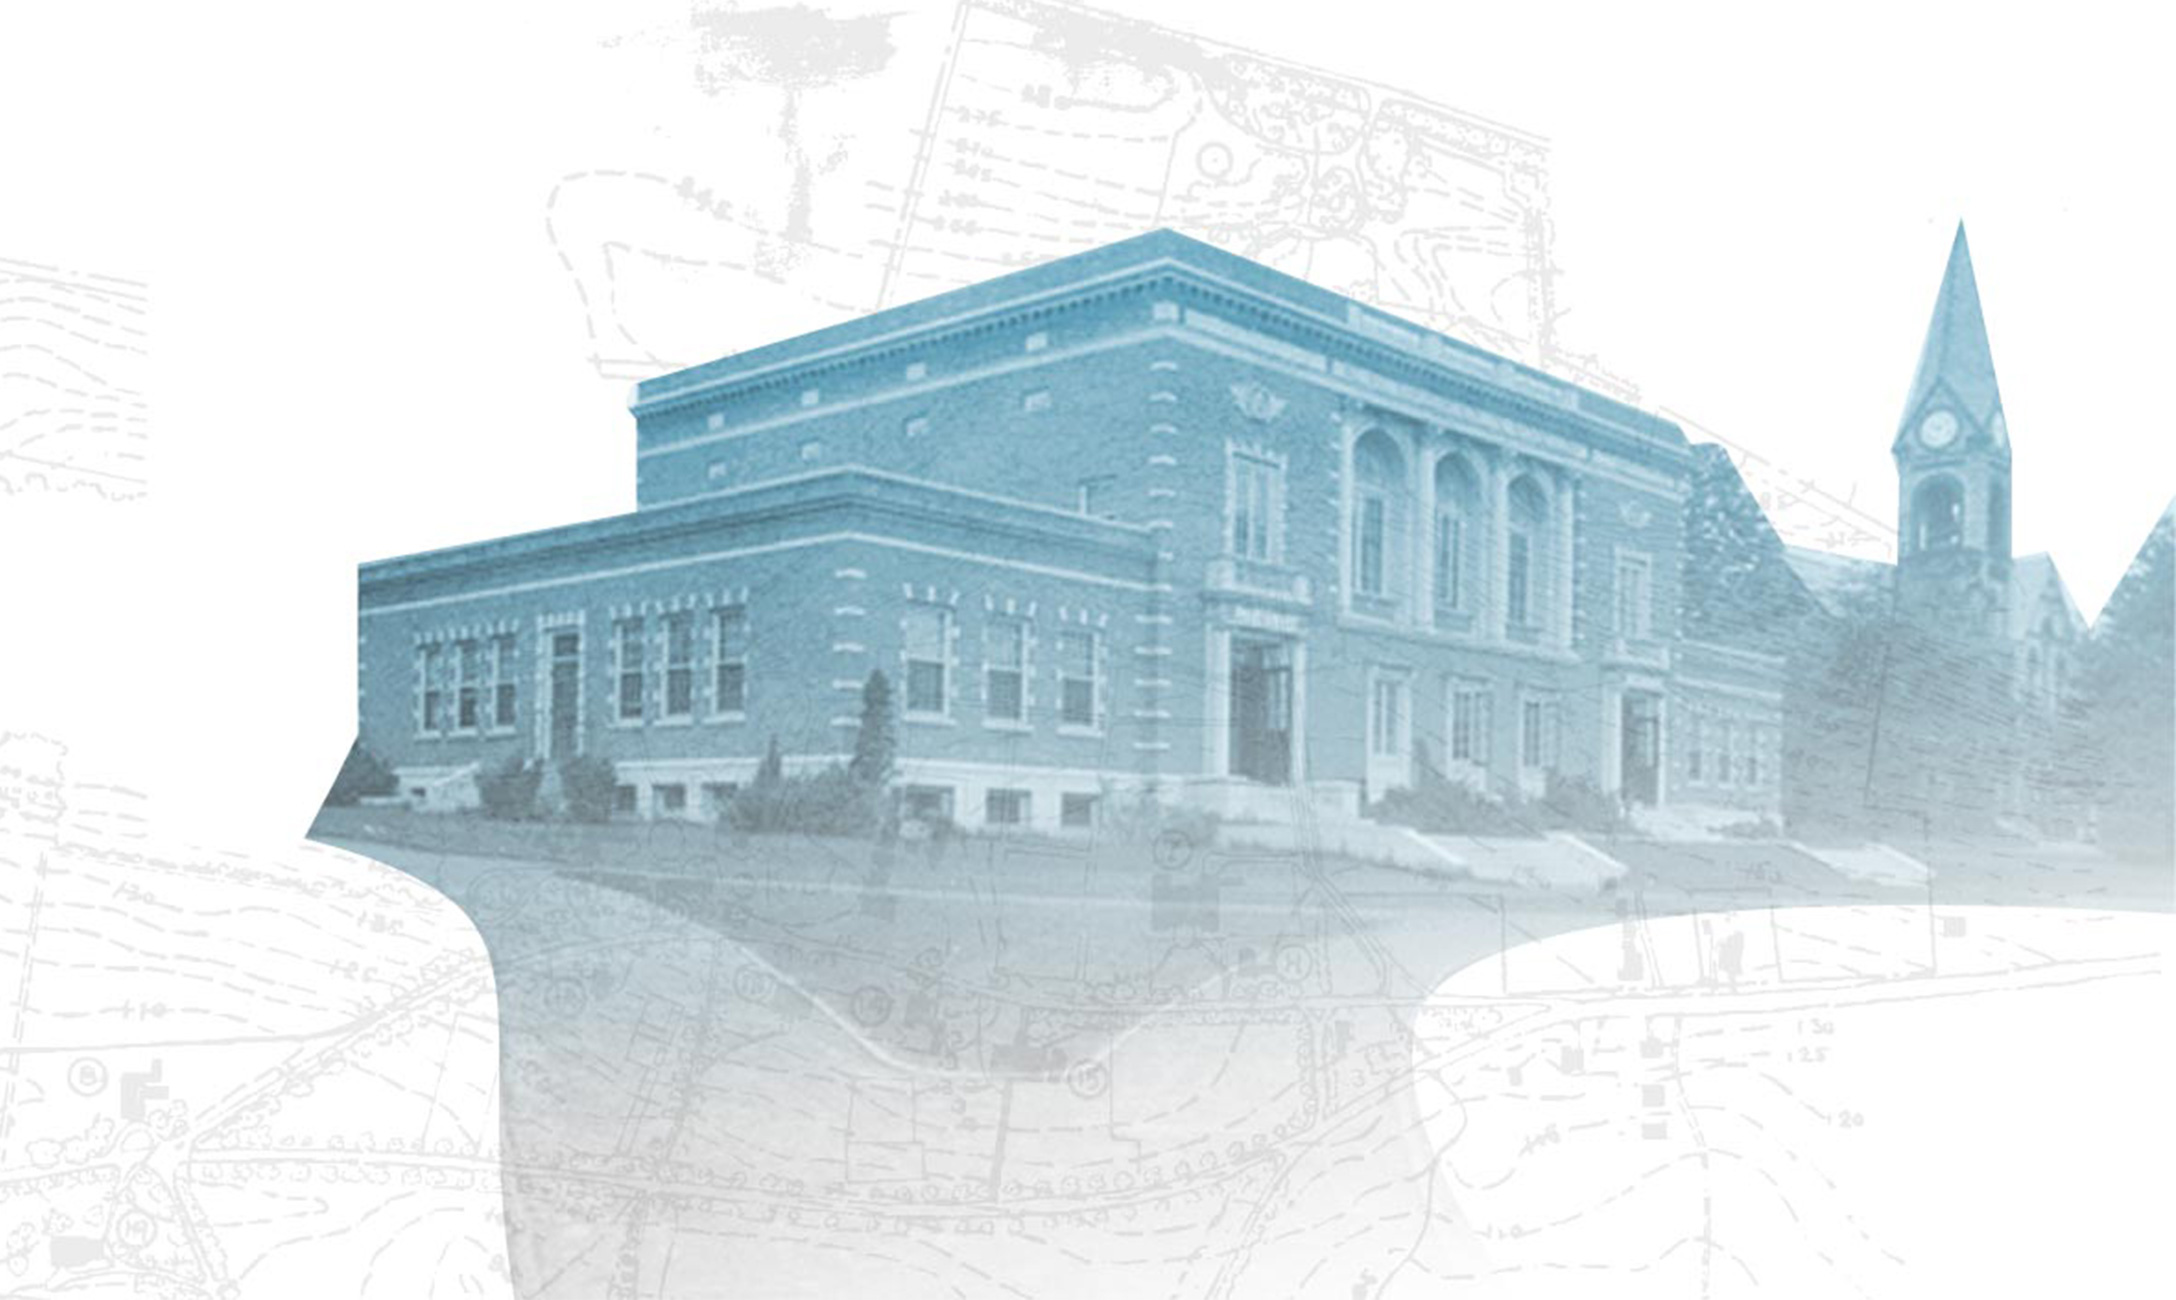 Blue treated photo of Memorial Hall with sketch overlay.